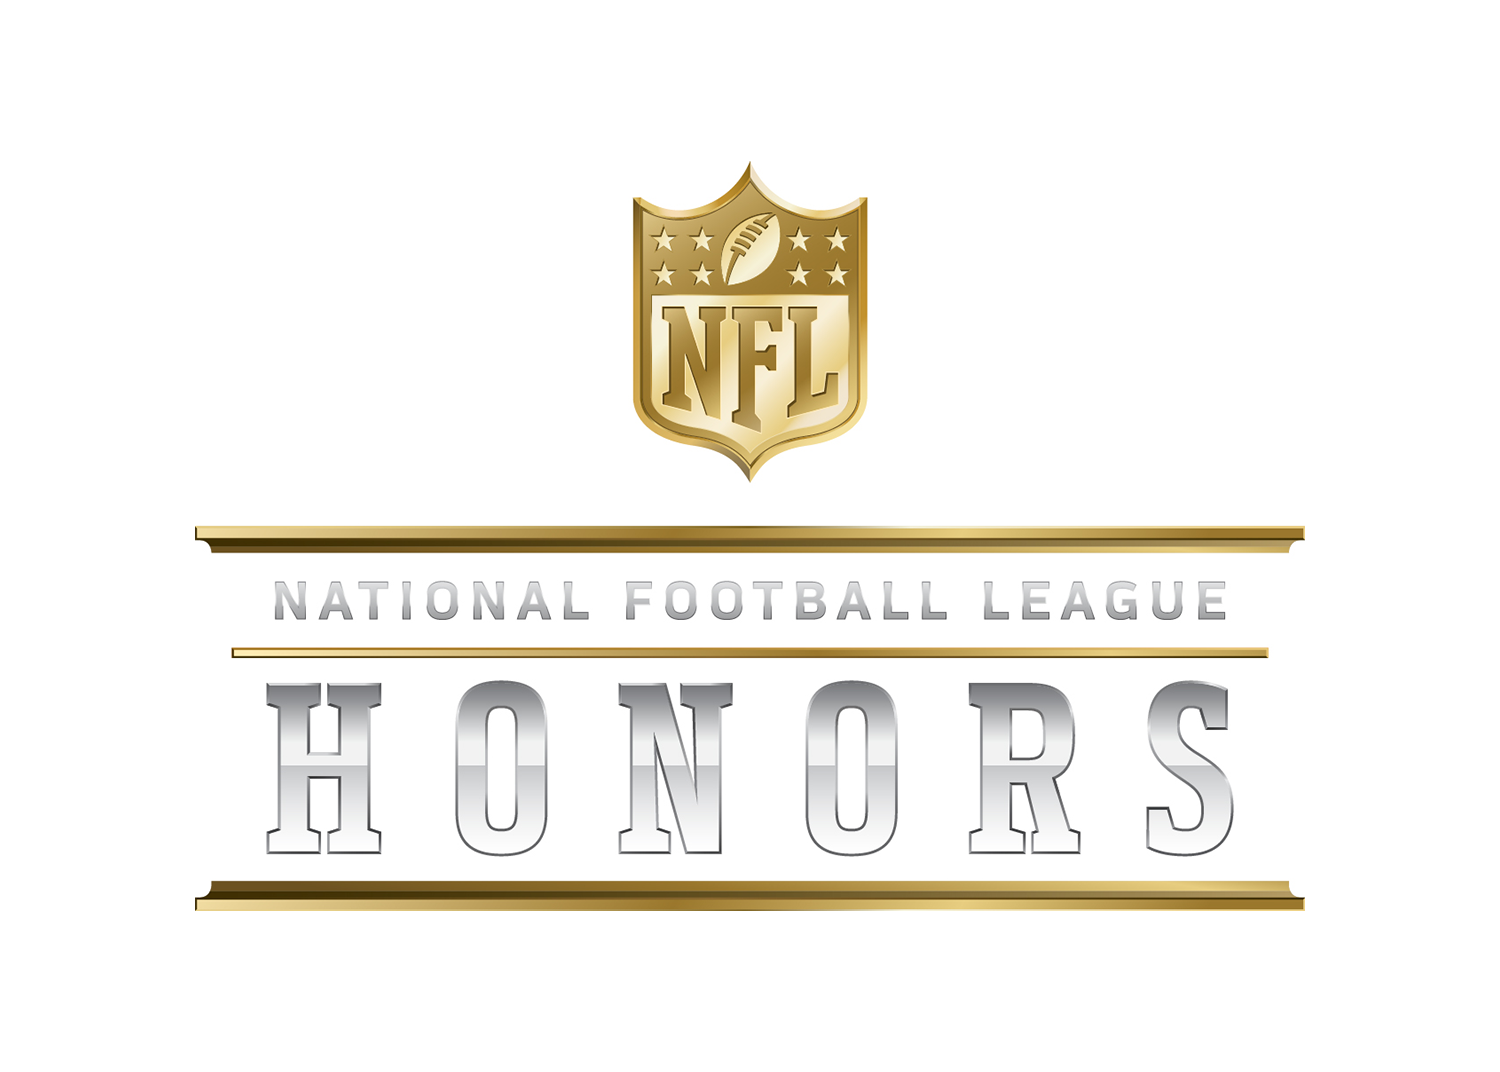 https://www.sportsmediawatch.com/wp-content/uploads/2019/02/nflhonors.png